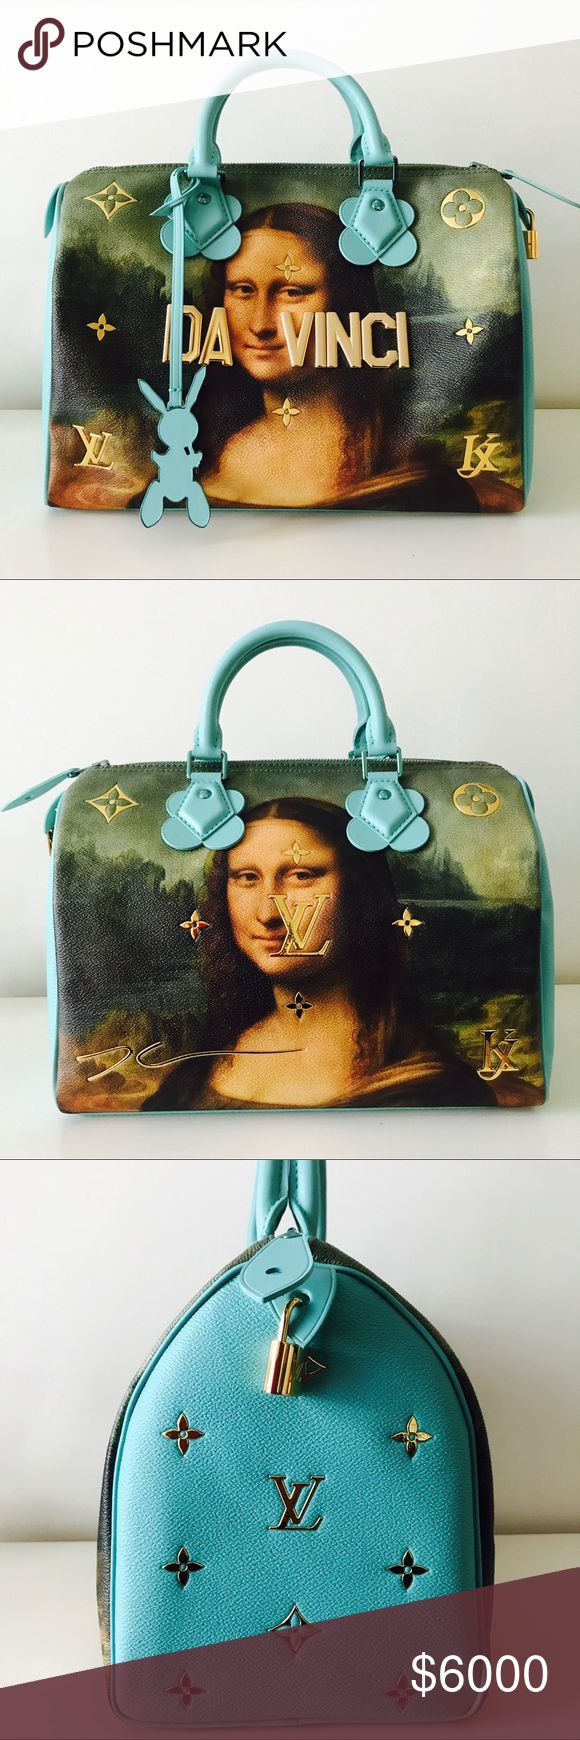 Louis Vuitton Masters collection Speedy 30 Super cool and rare Louis Vuitton x Jeff Koons Masters collection Da Vinci Mona Lisa Speedy 30. Sold out everywhere.  Brand new with original dustbag. Louis Vuitton Bags Satchels